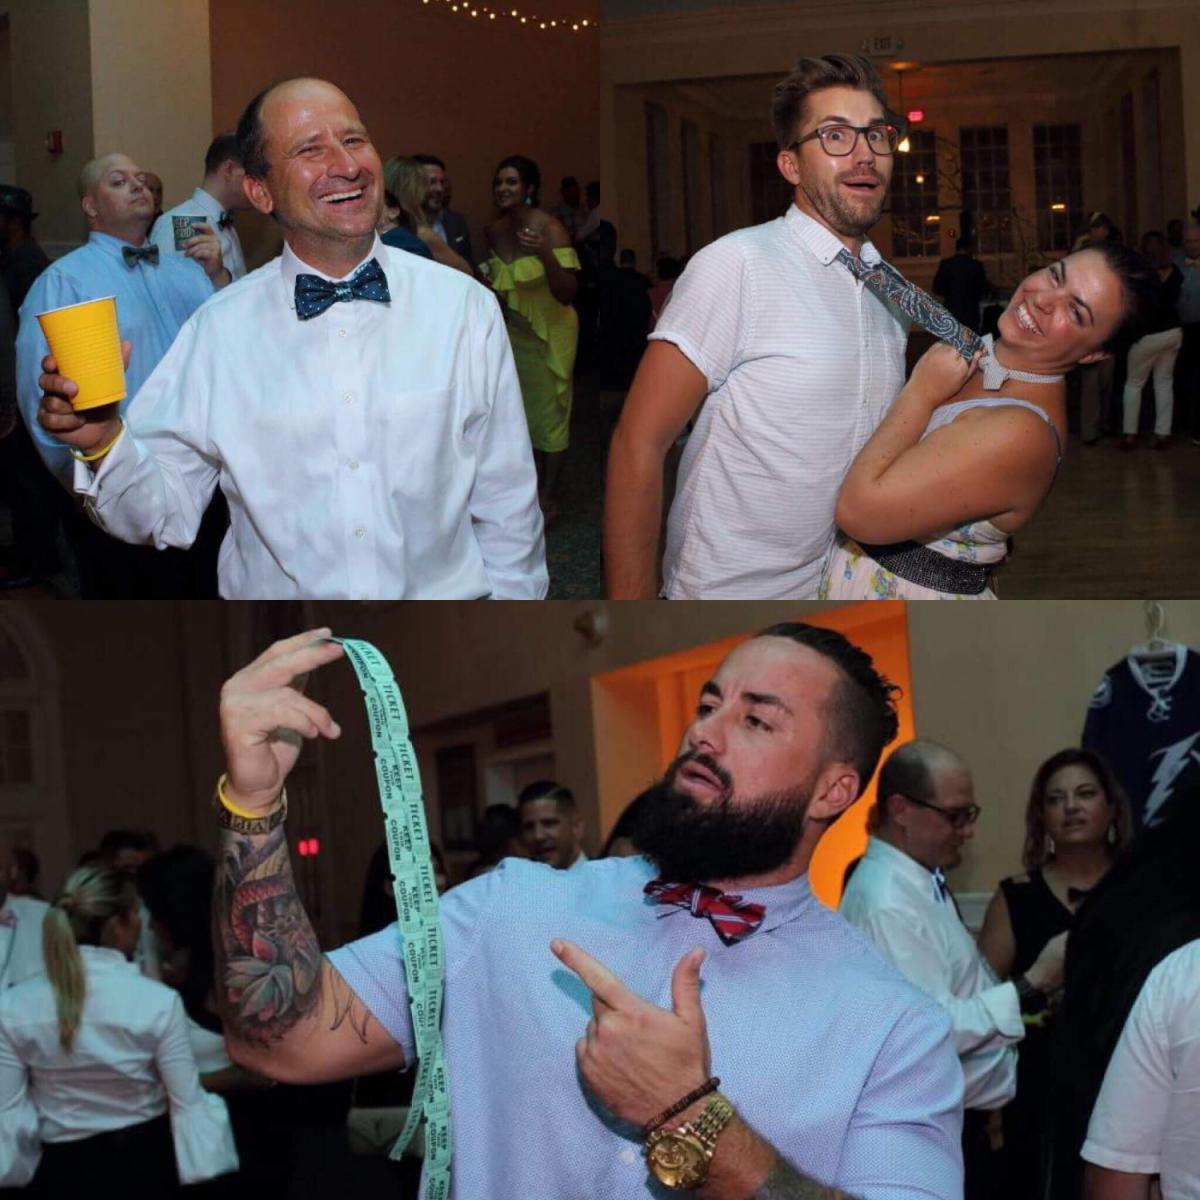 Beer and Bow Ties Combines Fun and Philanthropy at The Orlo on September 14th